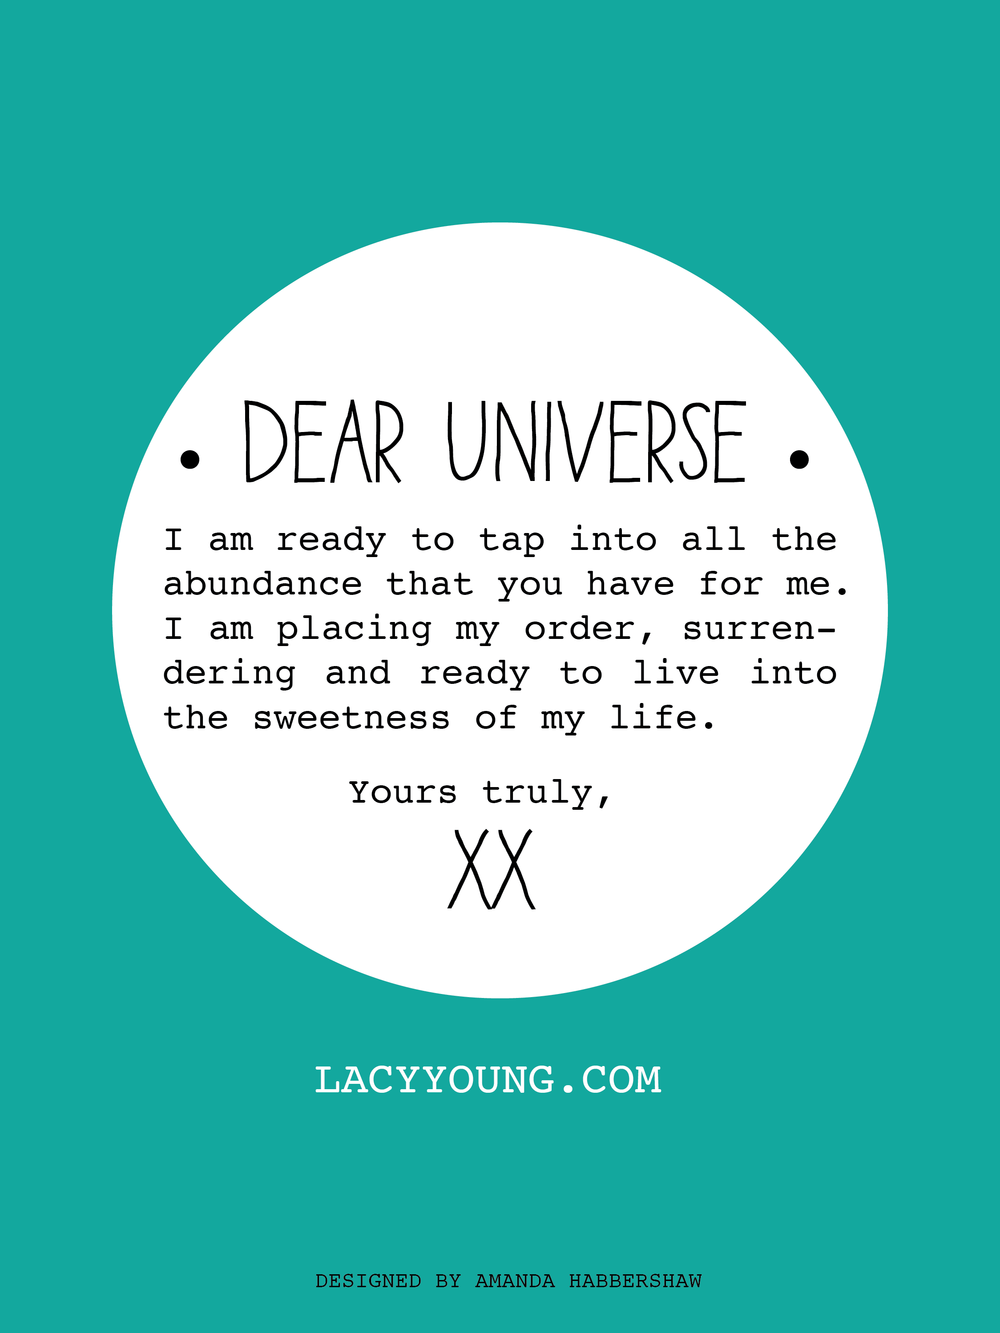 TheBest Thing: Placing Your Order with the Universe